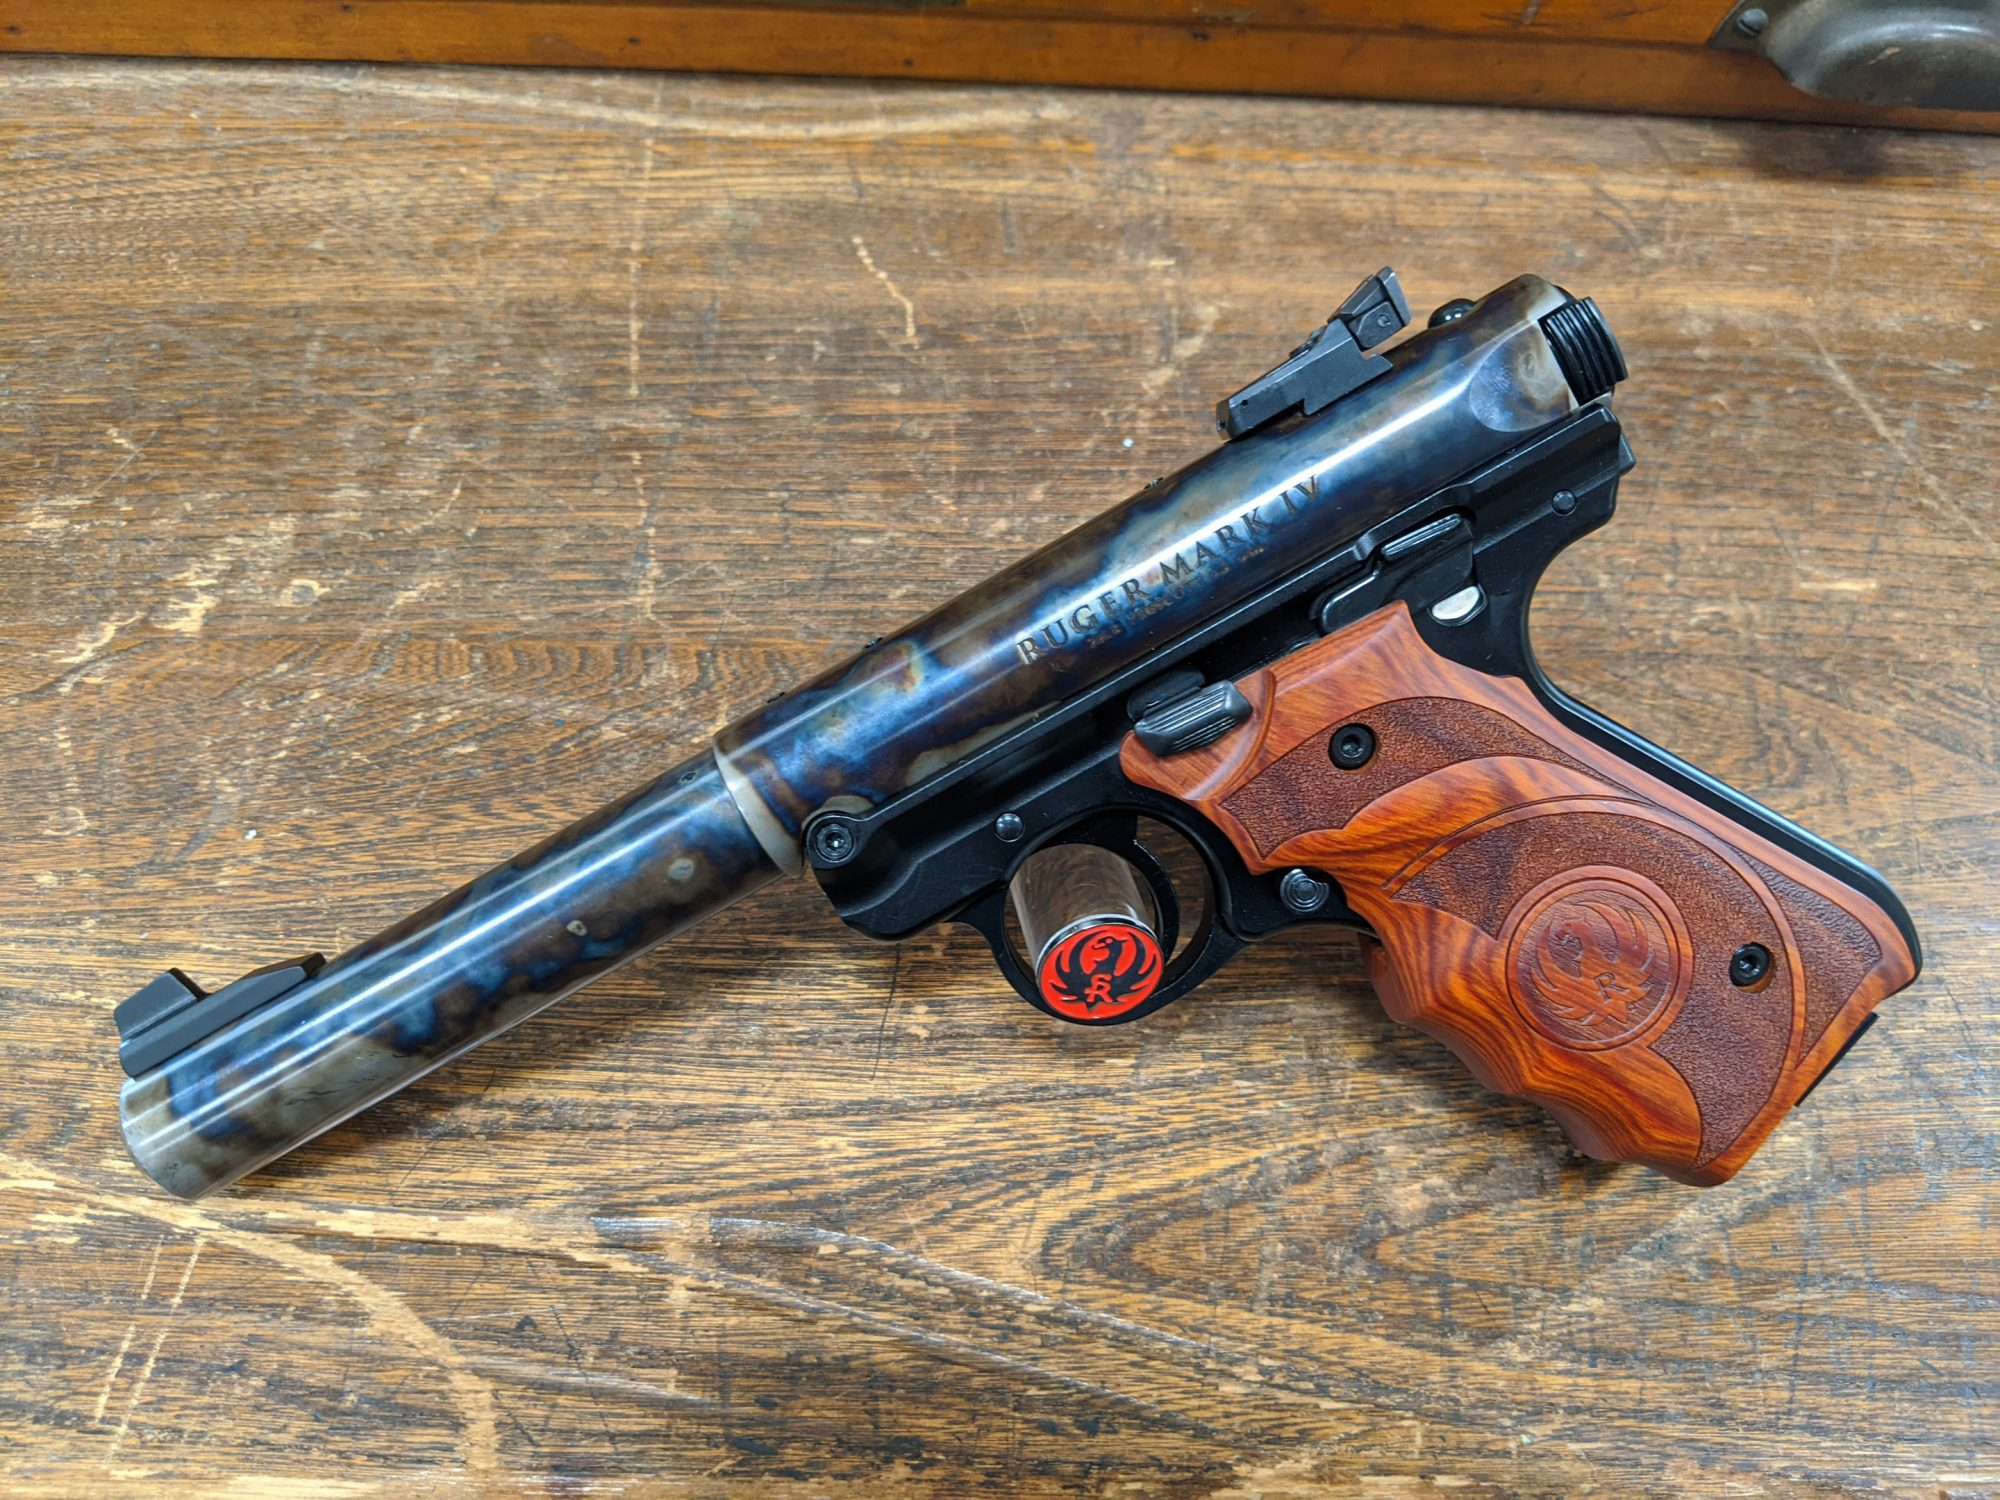 Photo of a Turnbull Finished Ruger Mark IV Target model, featuring traditional bone charcoal color case hardening by Turnbull Restoration of Bloomfield, NY